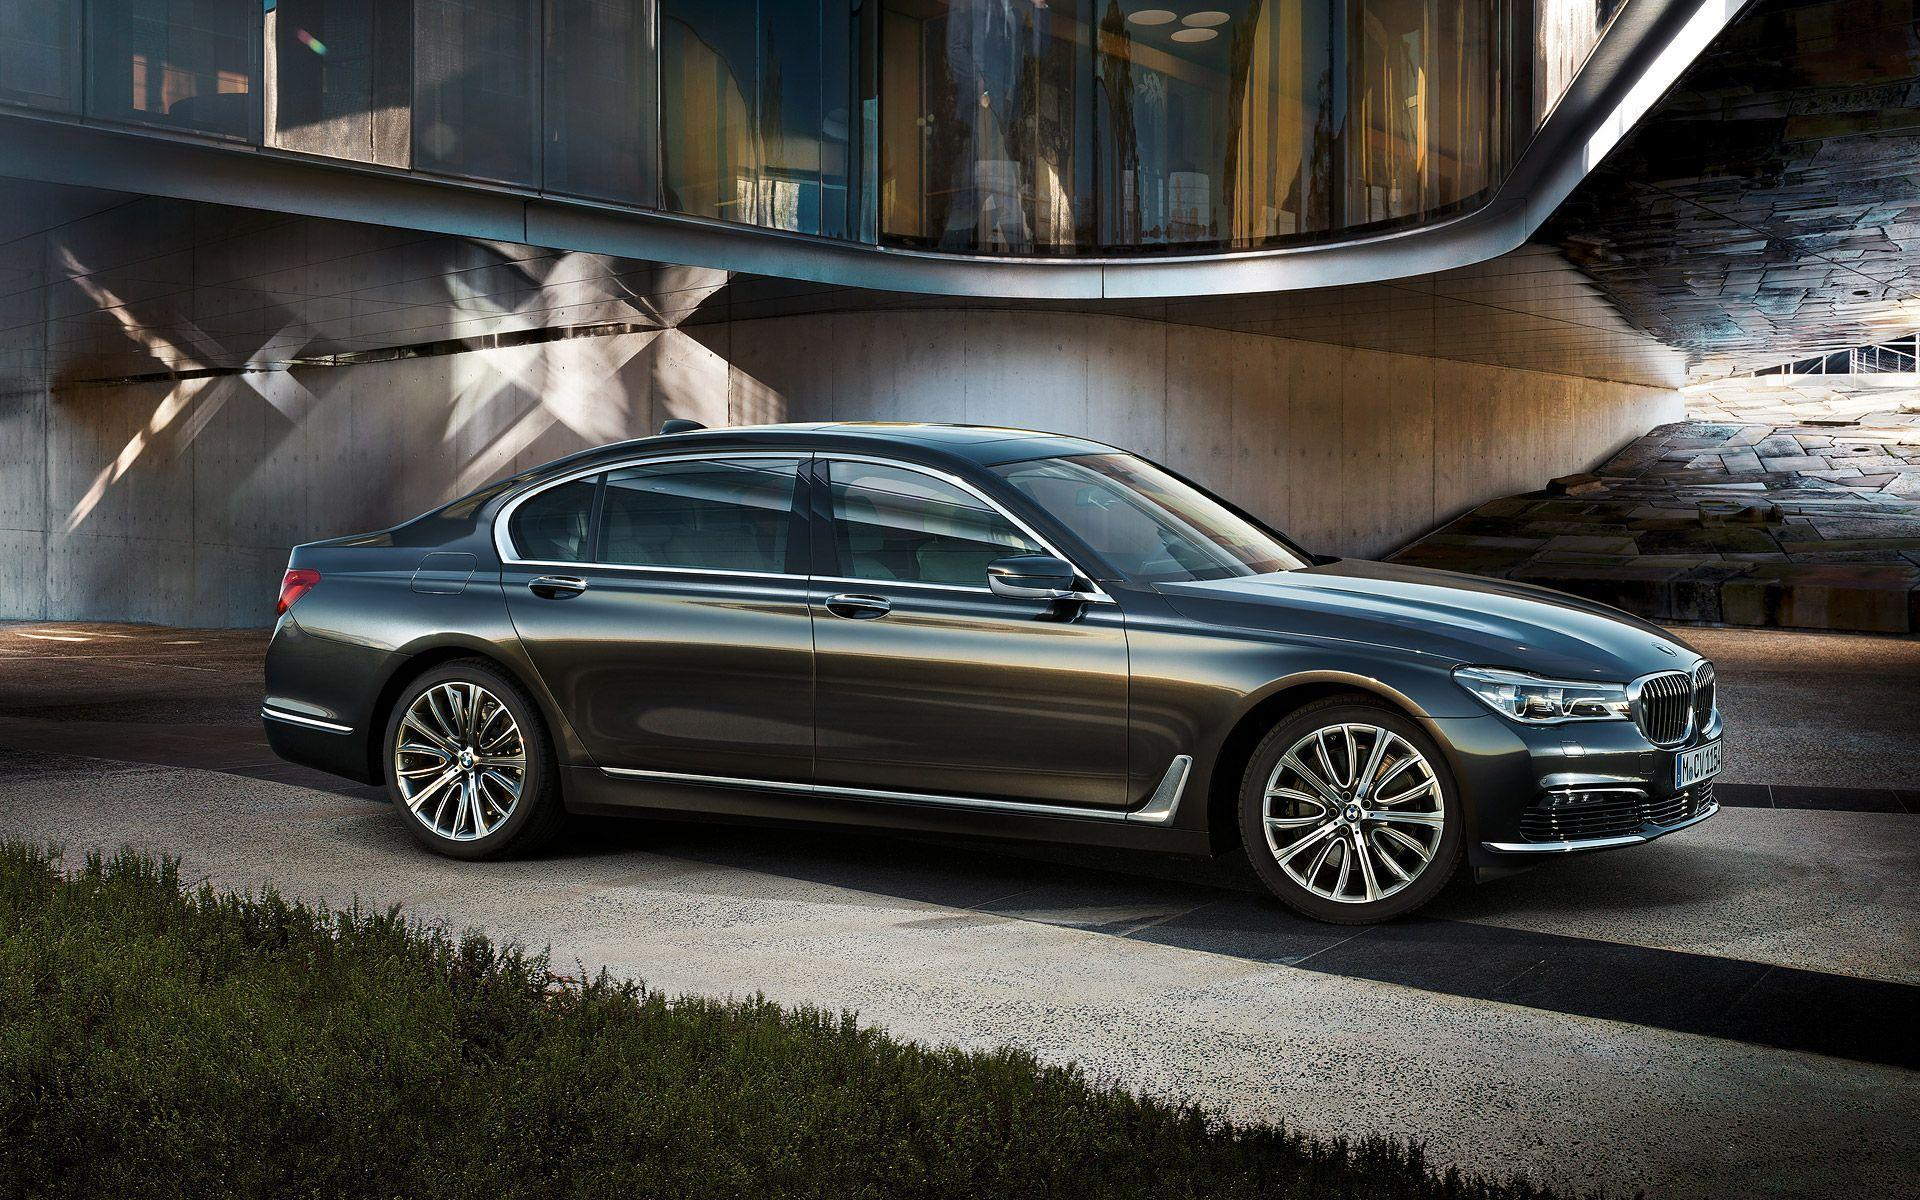 7 Serie Bmw 7 Series Wallpapers Wallpaper Cave